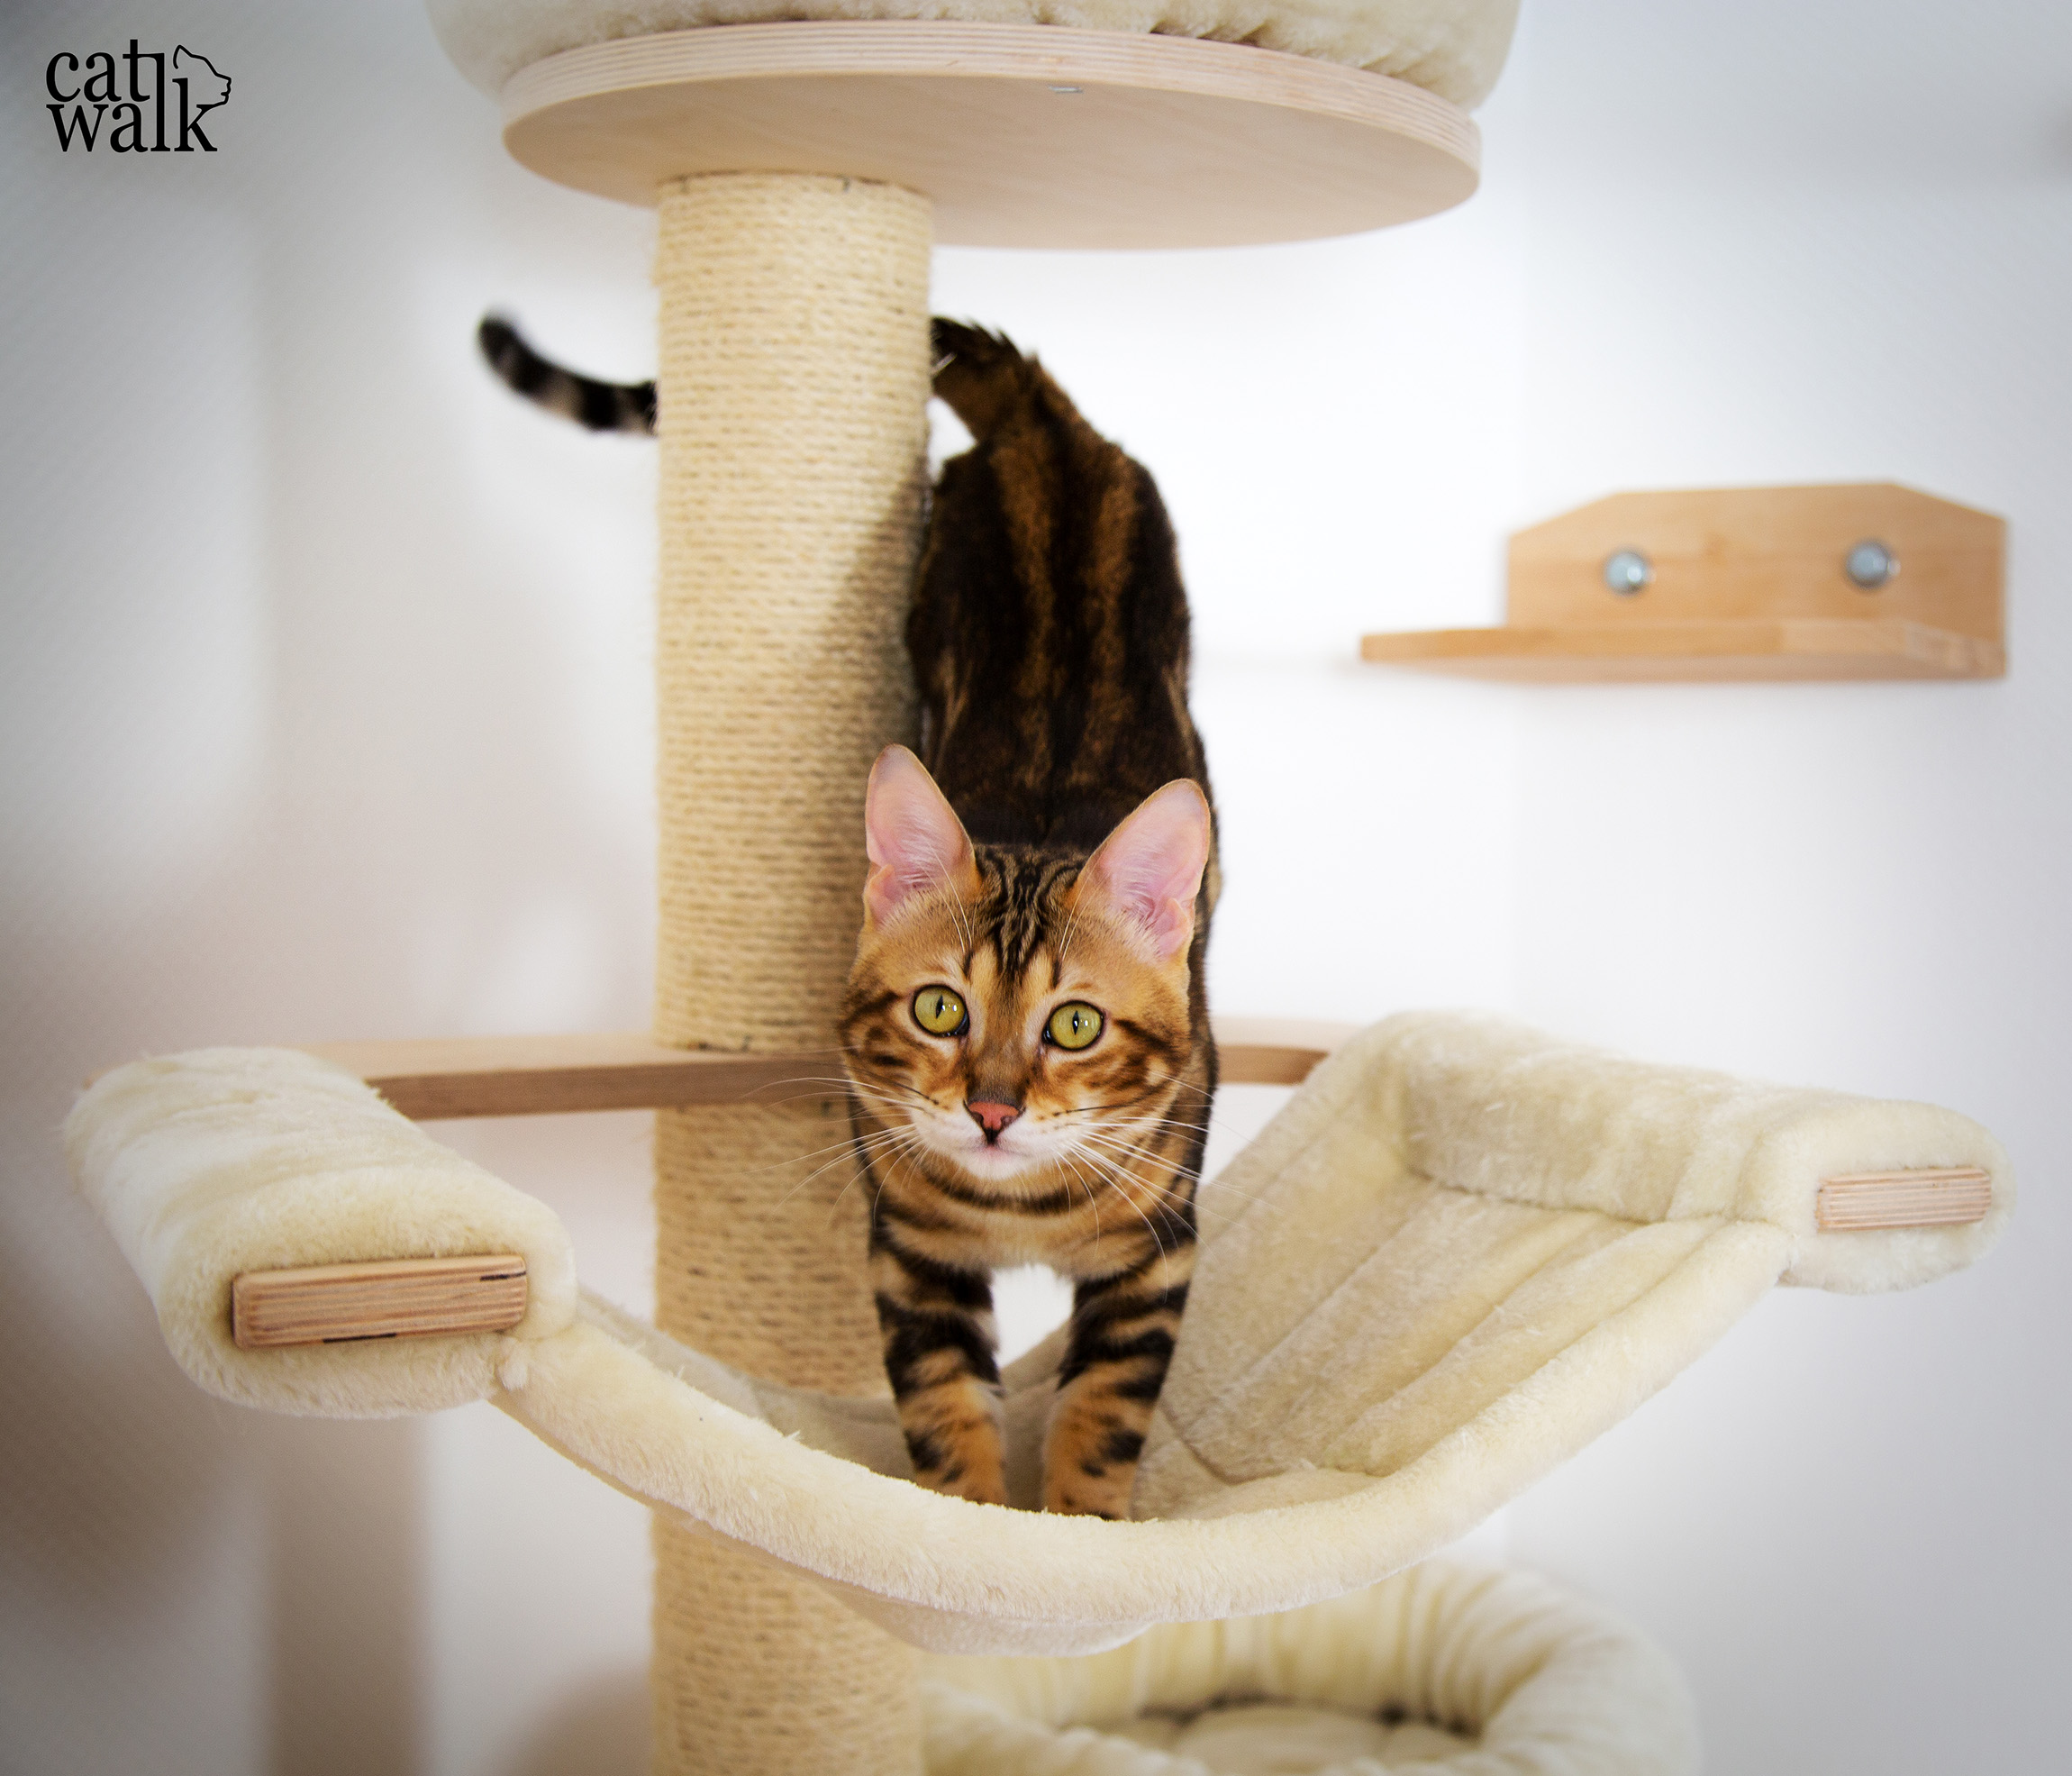 catwalk the begal cat on his cattree